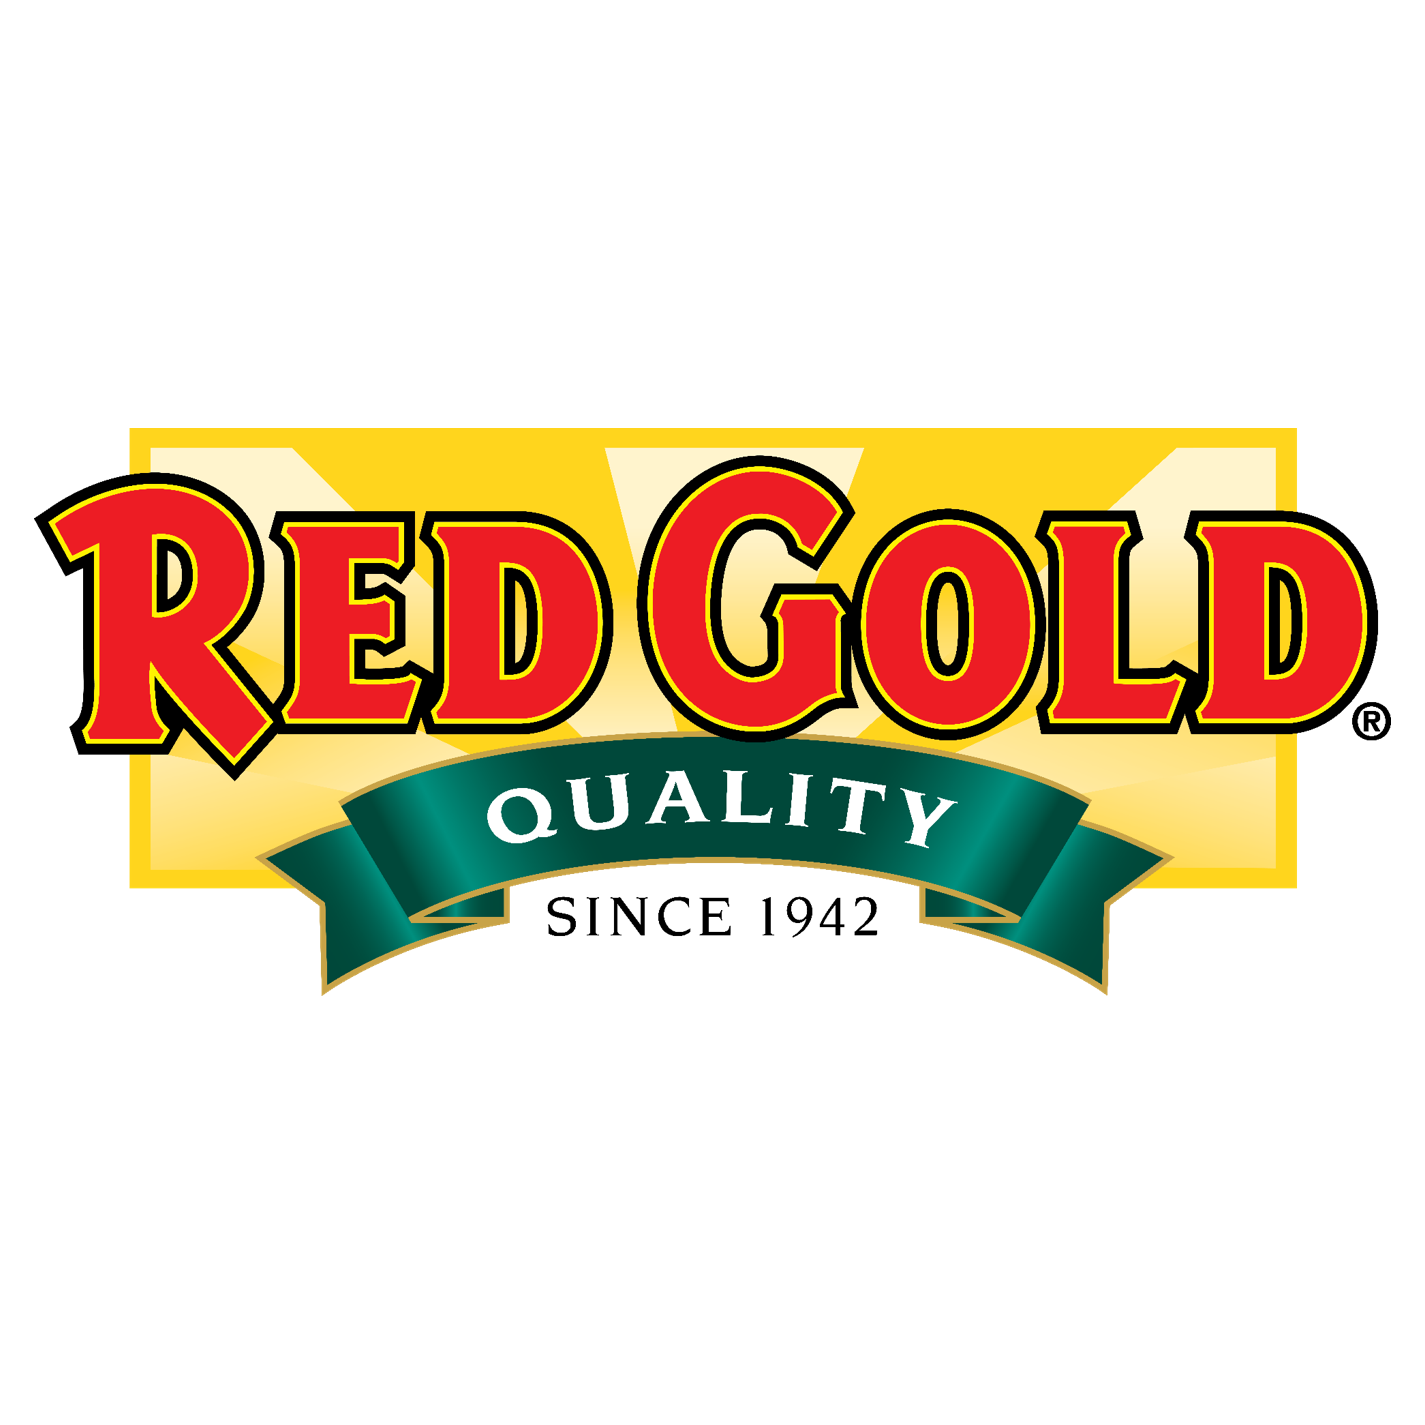 Red Gold - Premium Tomato Products & Condiments Logo